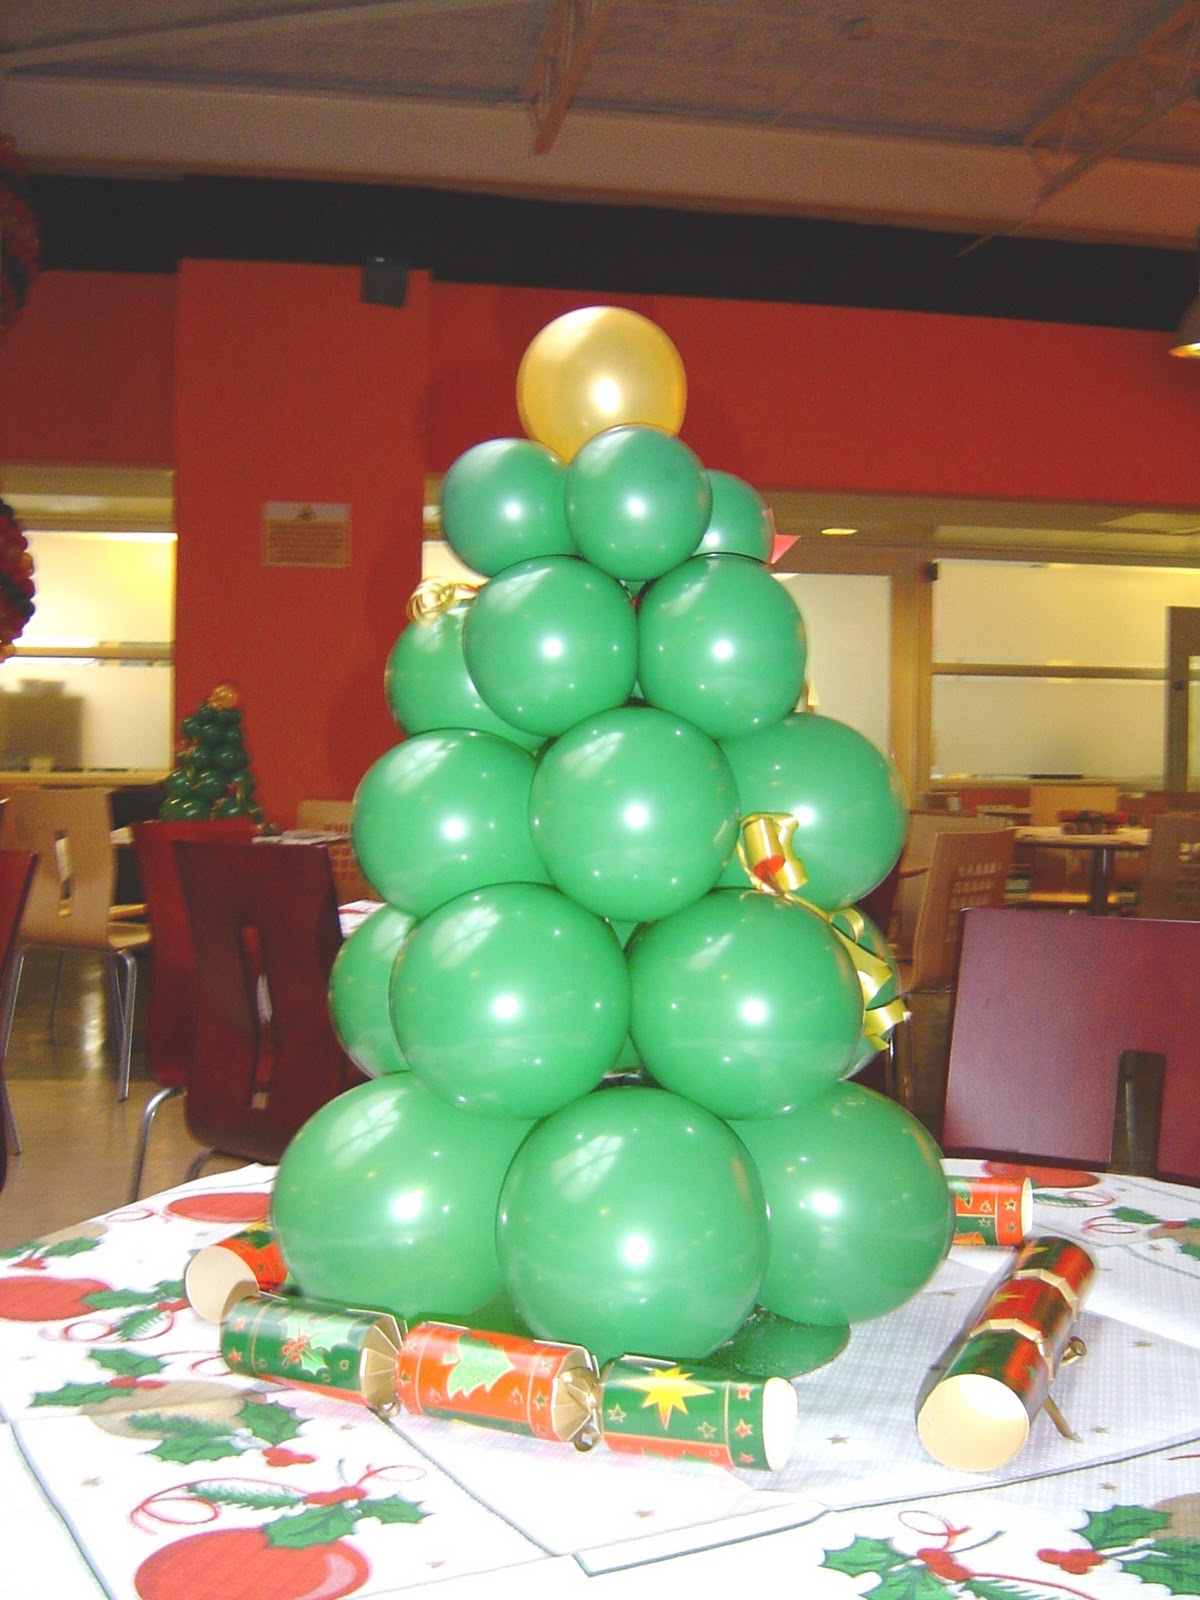 Decorum Weddings and Events: Balloon Decor Training